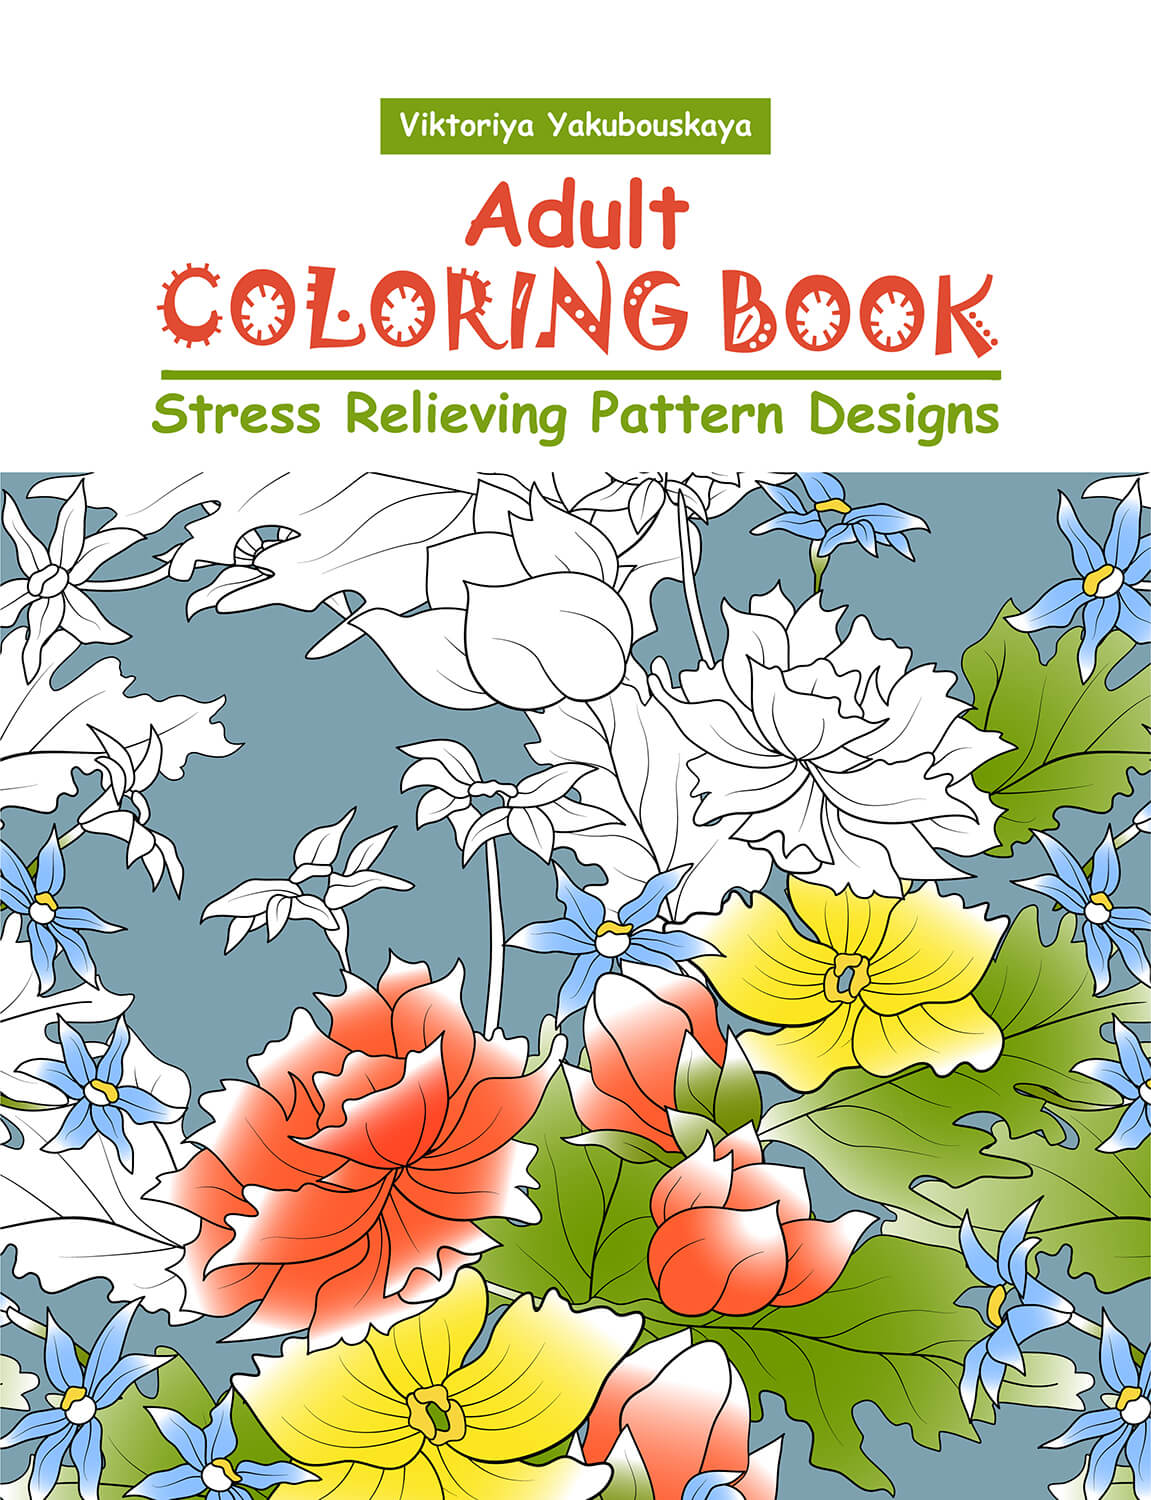 Adult Coloring Book: Stress Relieving Pattern Designs | ReStyleGraphic